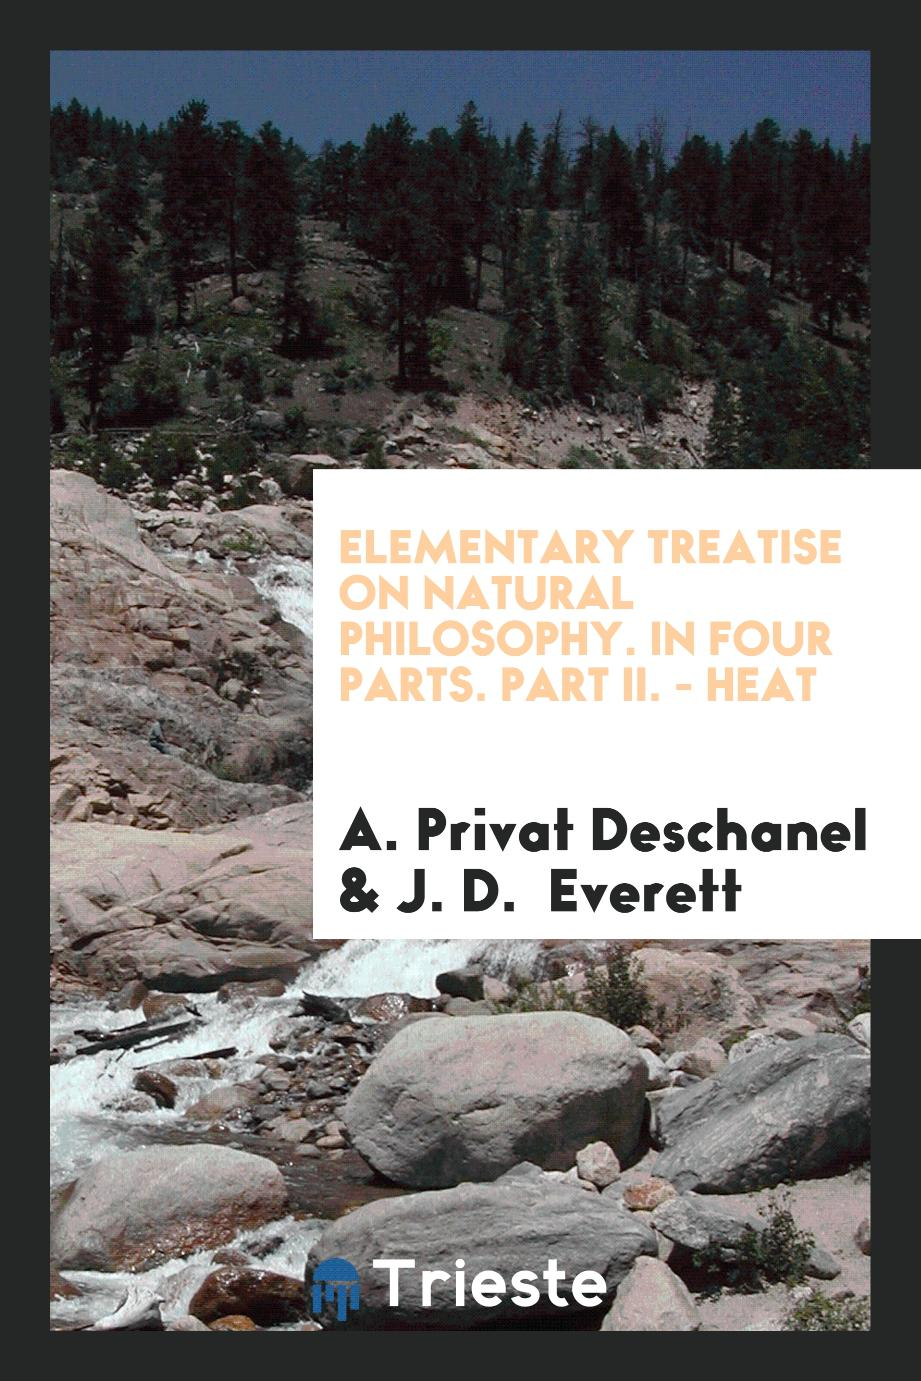 Elementary Treatise on Natural Philosophy. In Four Parts. Part II. - Heat